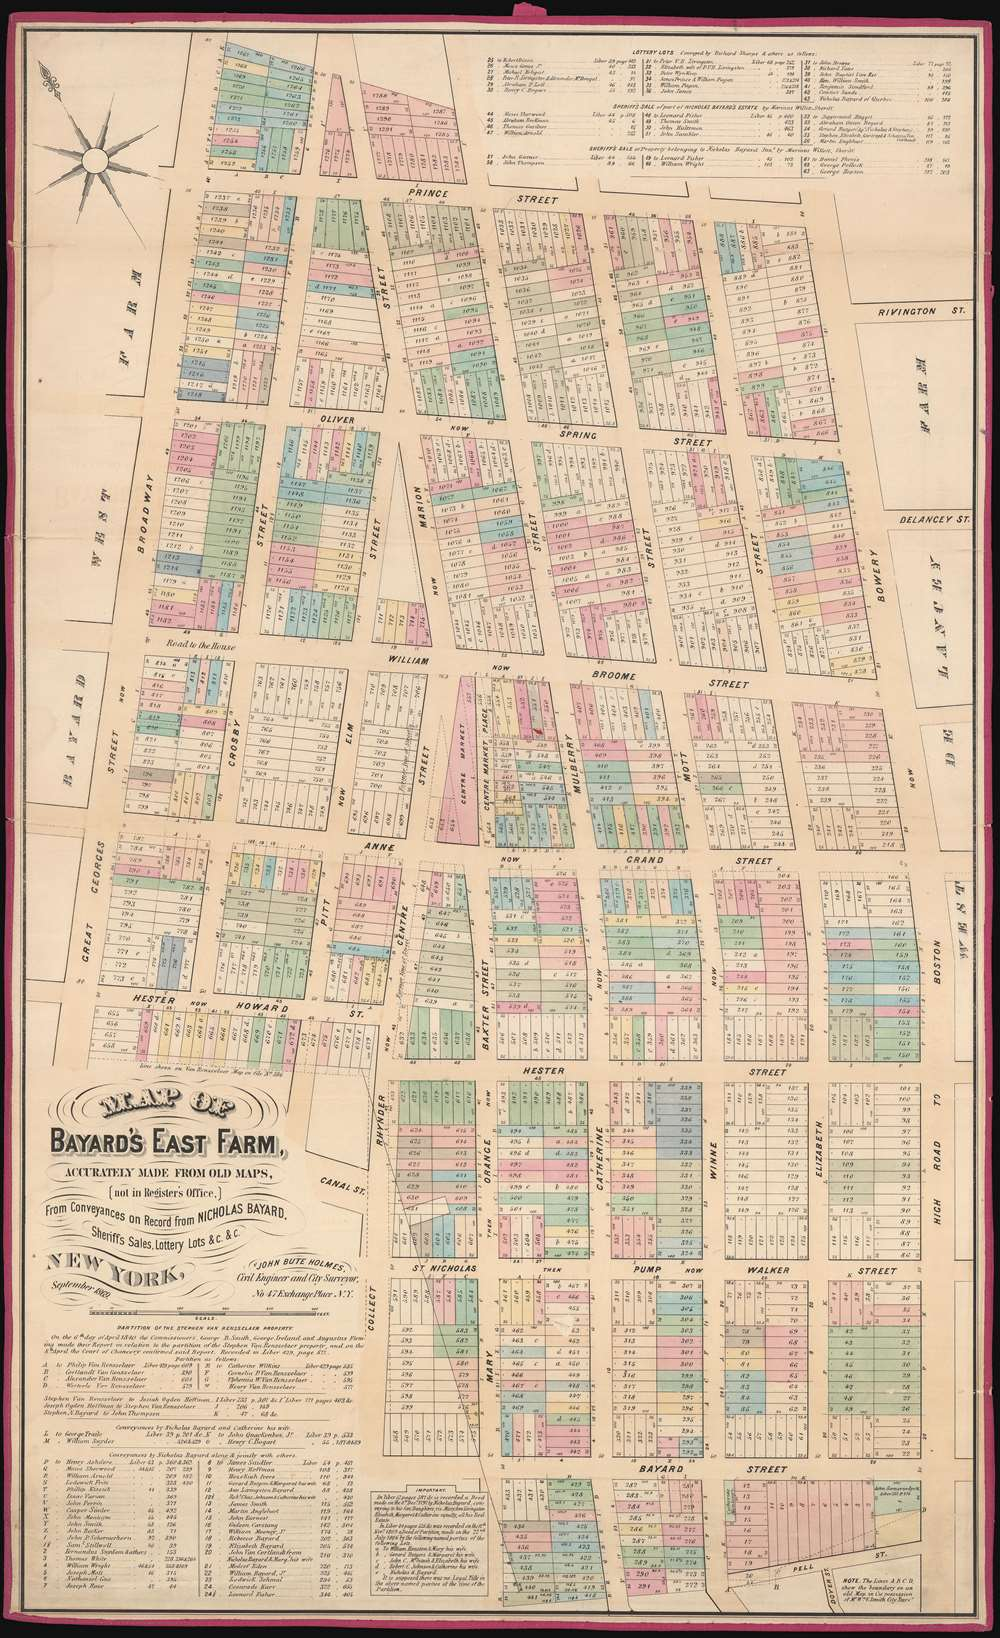 Map of Bayard's East Farm, Accurately Made from Old Maps, (not in Register's Office), From Conveyances on Record from NICHOLAS BAYARD, Sheriff's Sales, Lottery Lots, etc., etc. - Main View